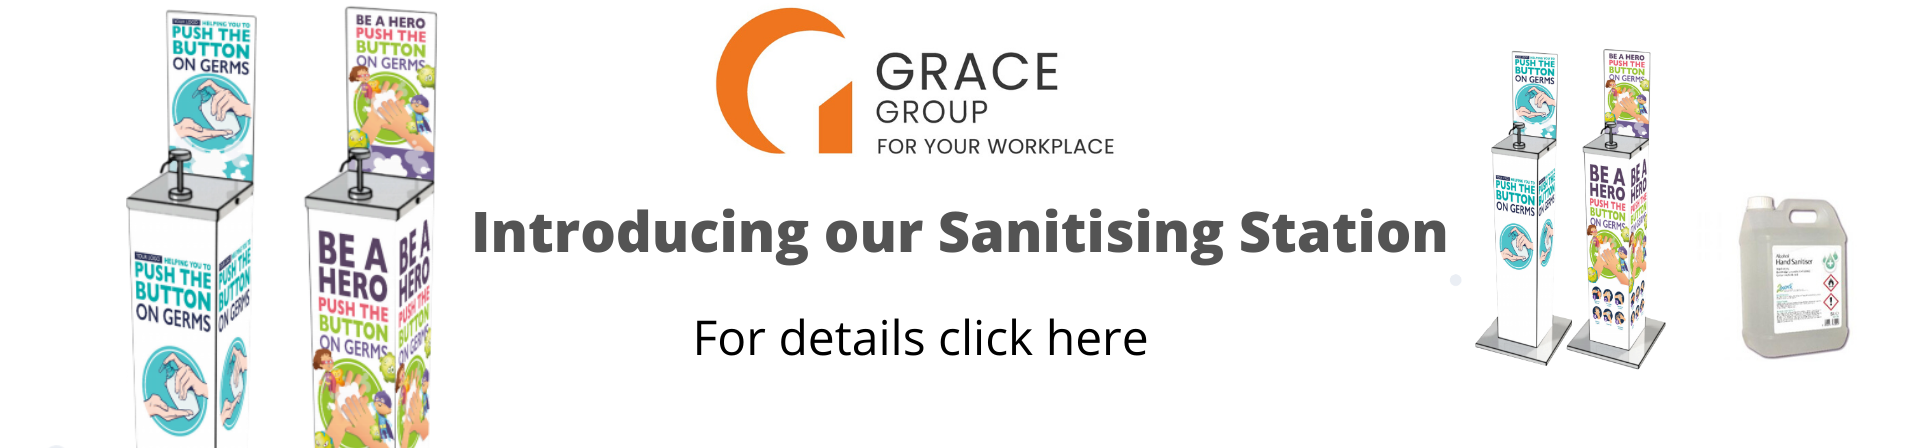 Grace Group Sanitising Station